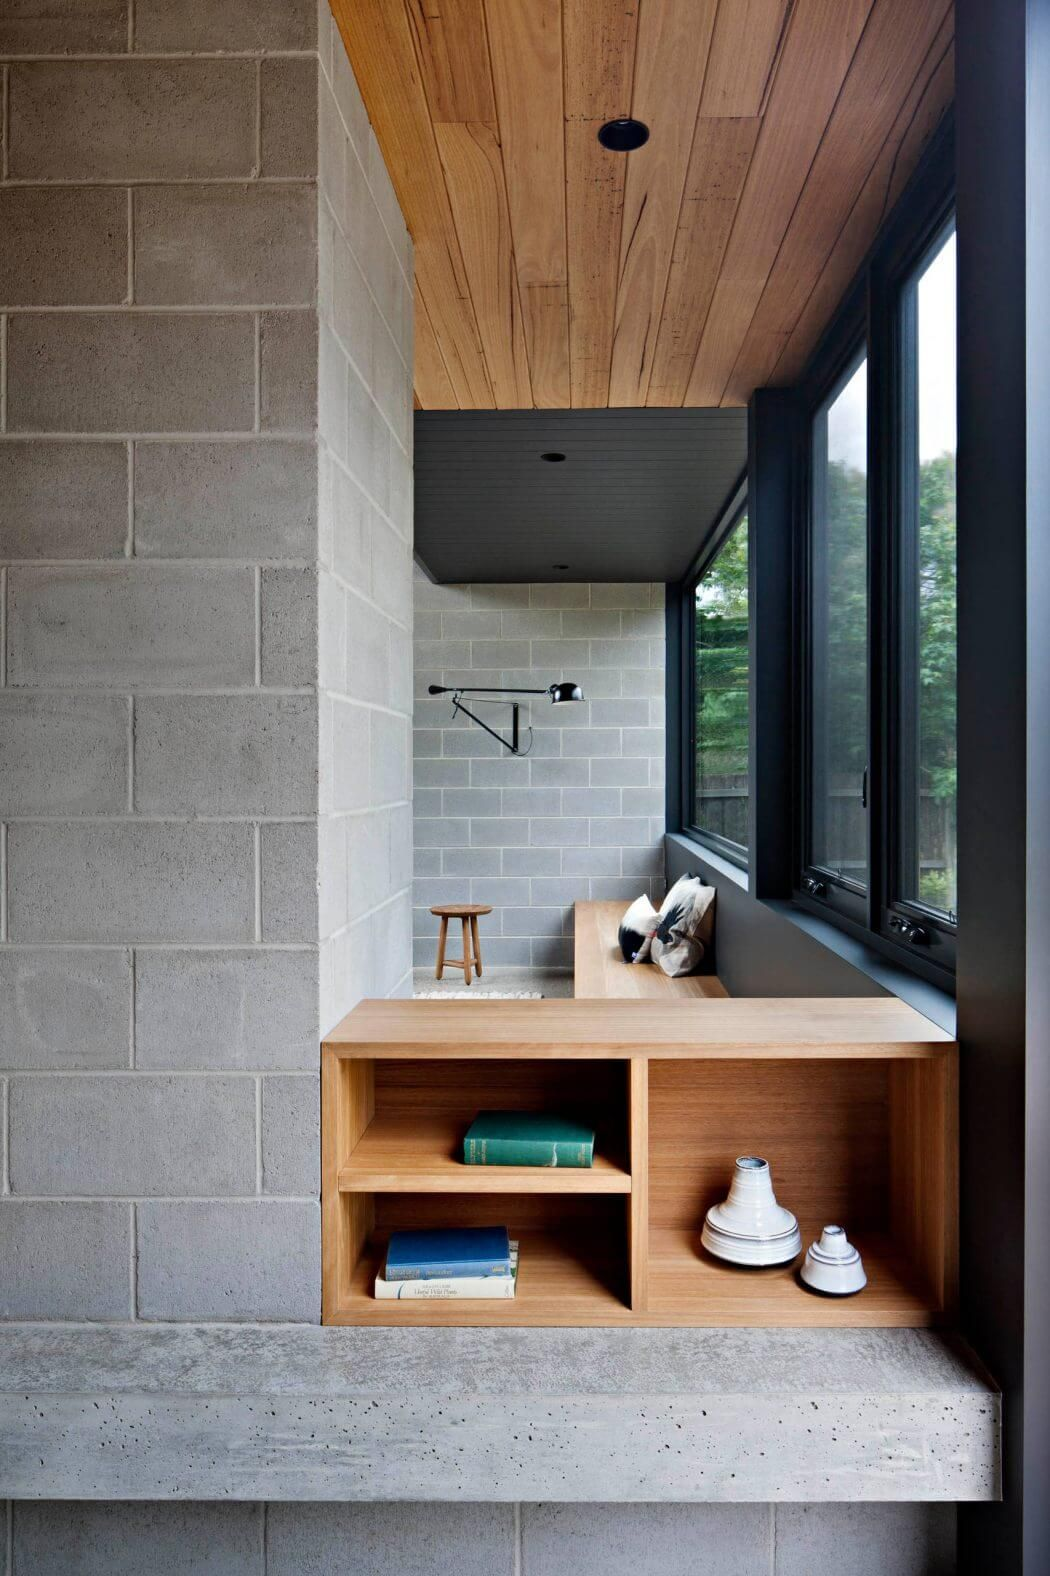 Cinder Blocks Poured And Paneled Concrete Might Be The More Obvious  Choices, But Everyday Cinder